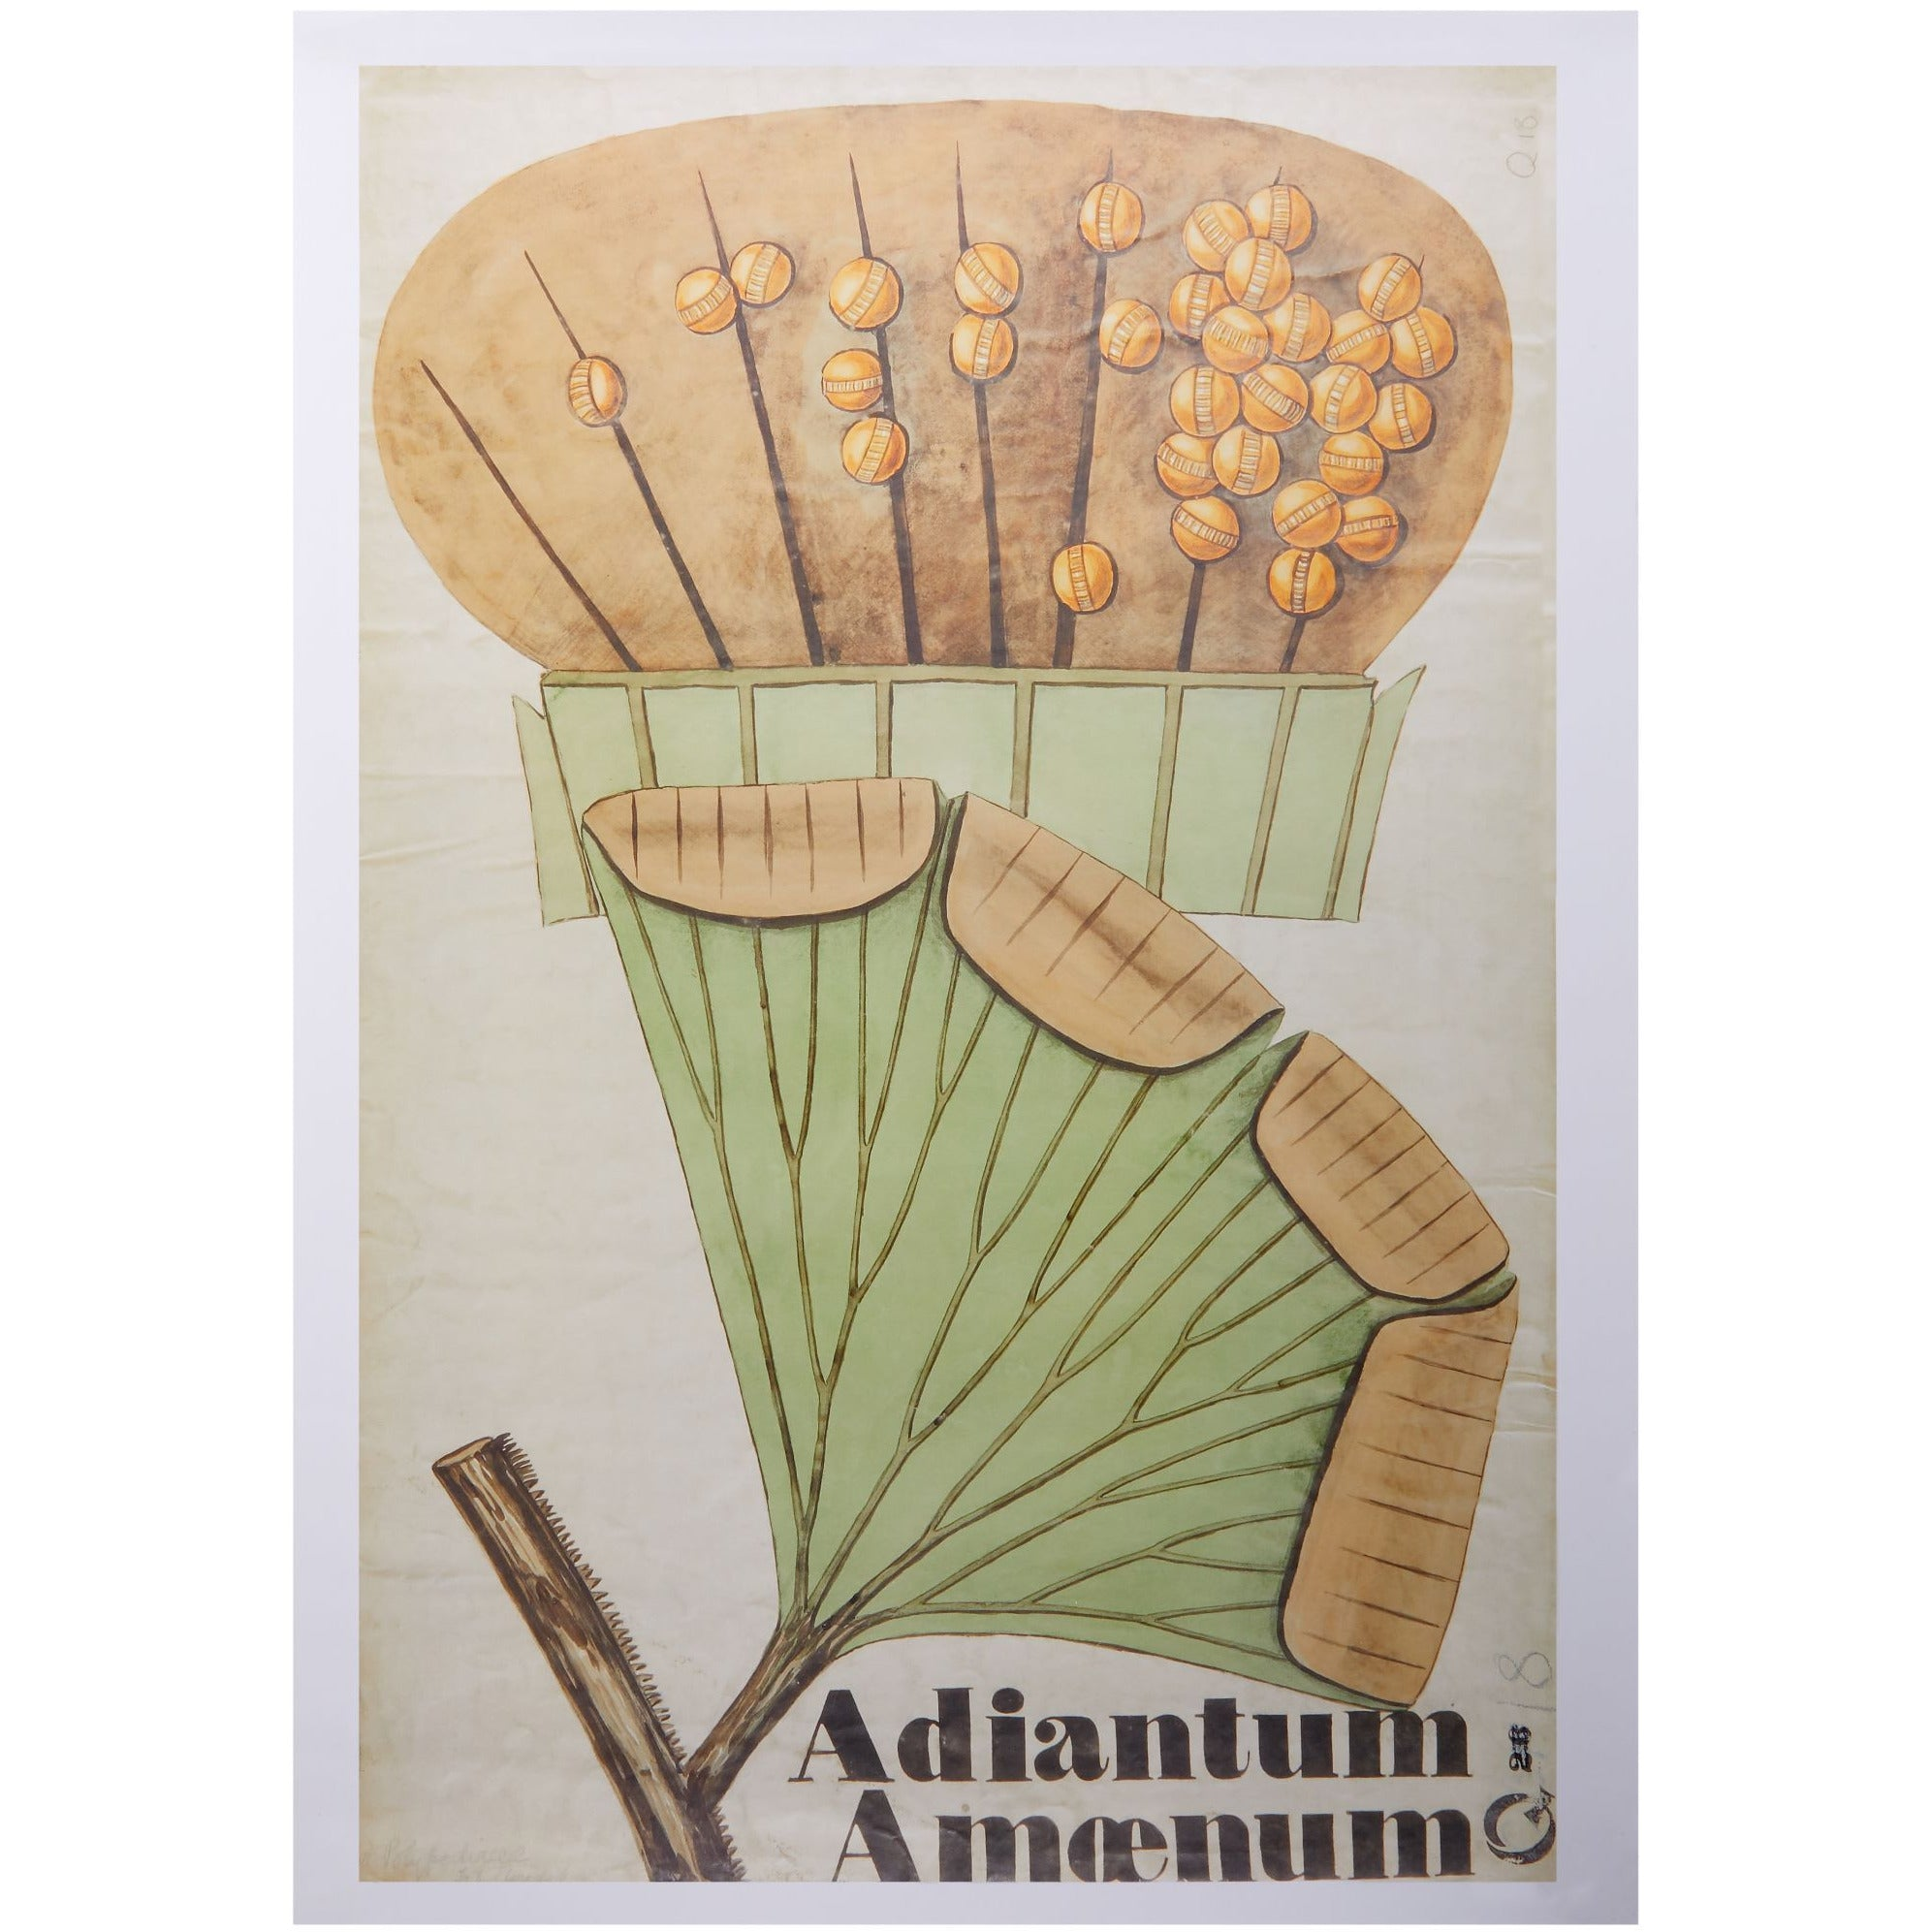 Featured image for the project: Henslow's Adiantum amoenum - A2 poster